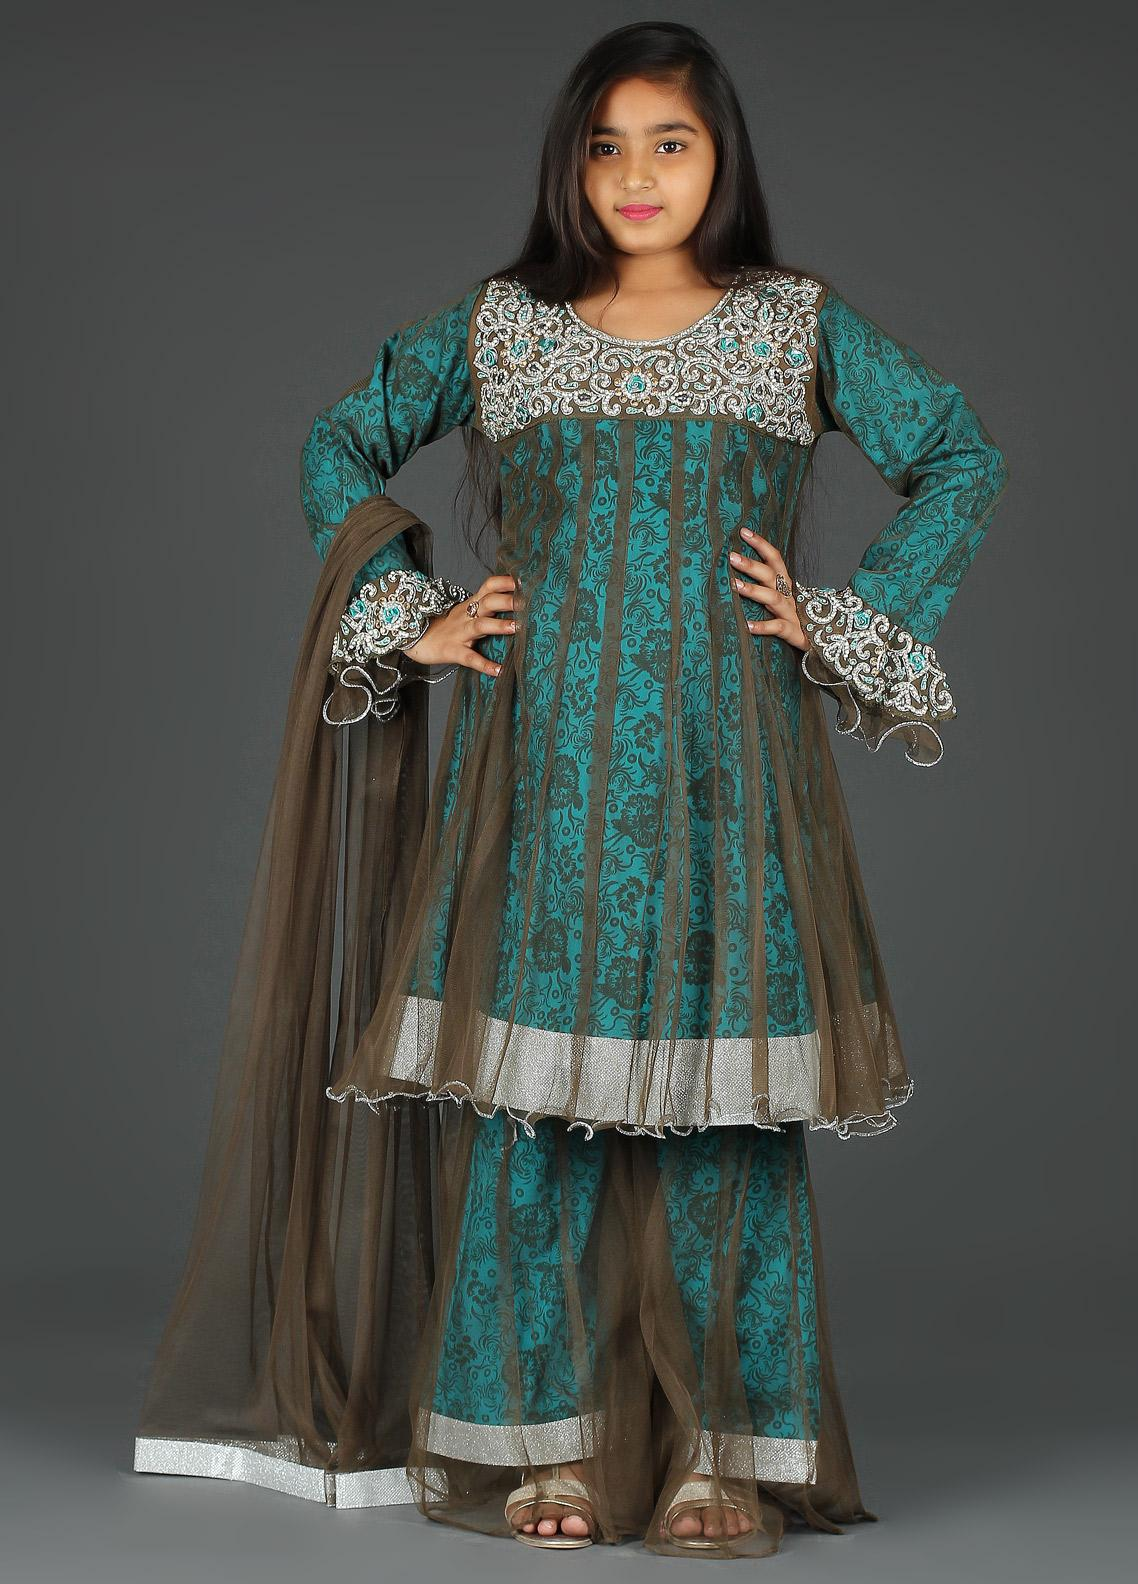 Sanaulla Exclusive Range Cotton Net Embroidered 3 Piece Suits for Girls -  G-253 Blue